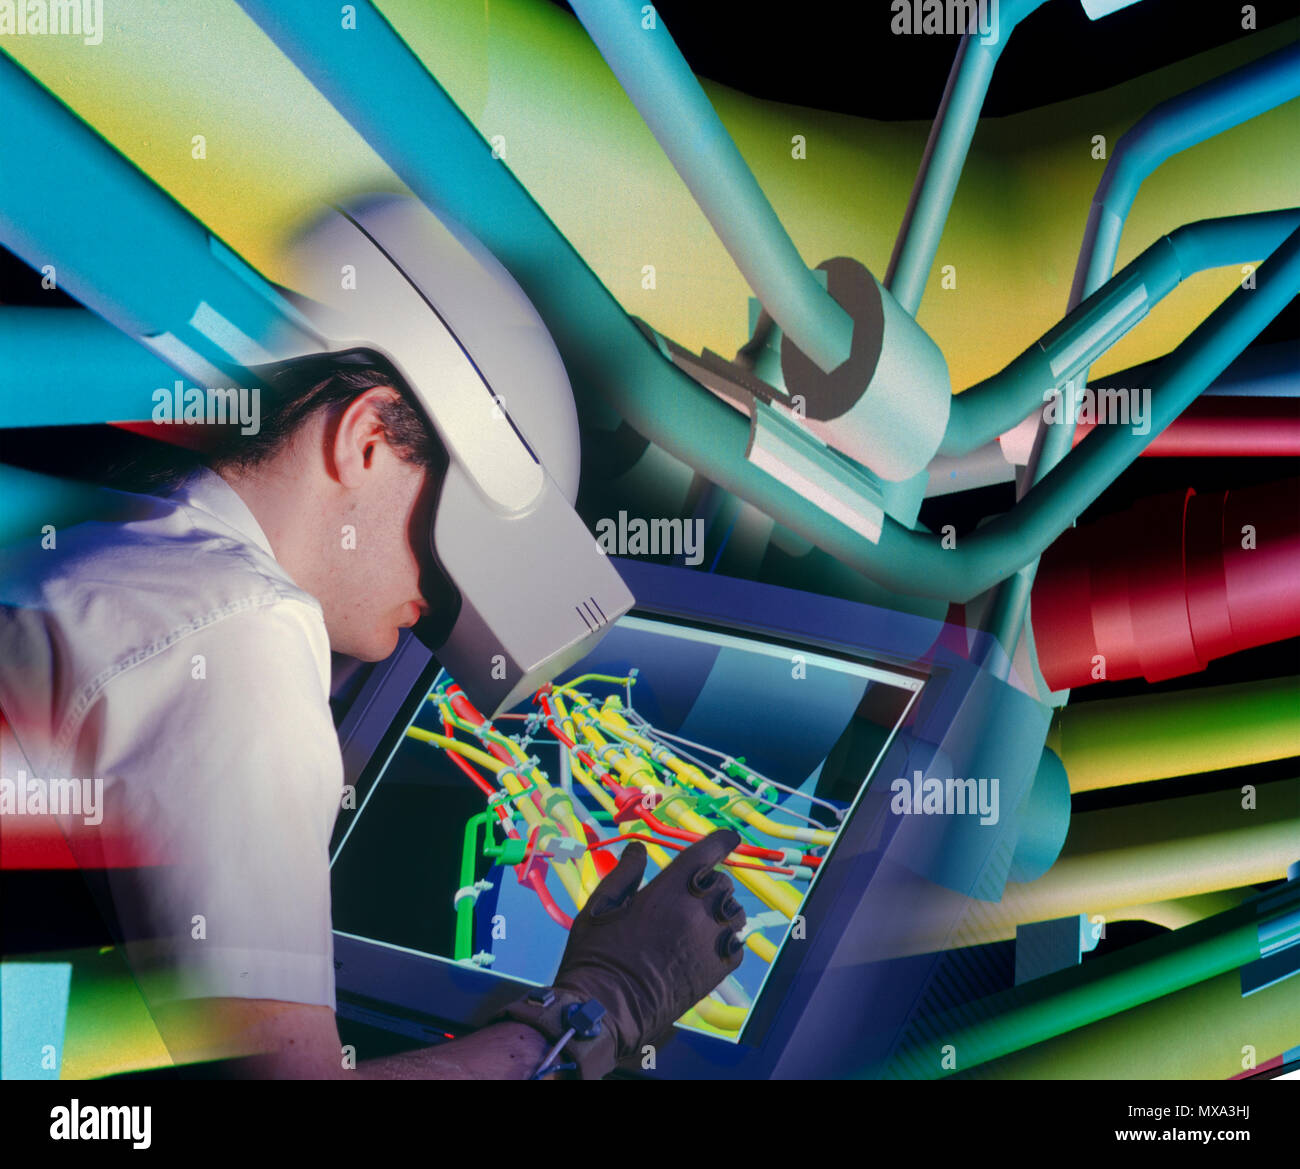 Nuclear engineering using augmented reality techniques - Stock Image